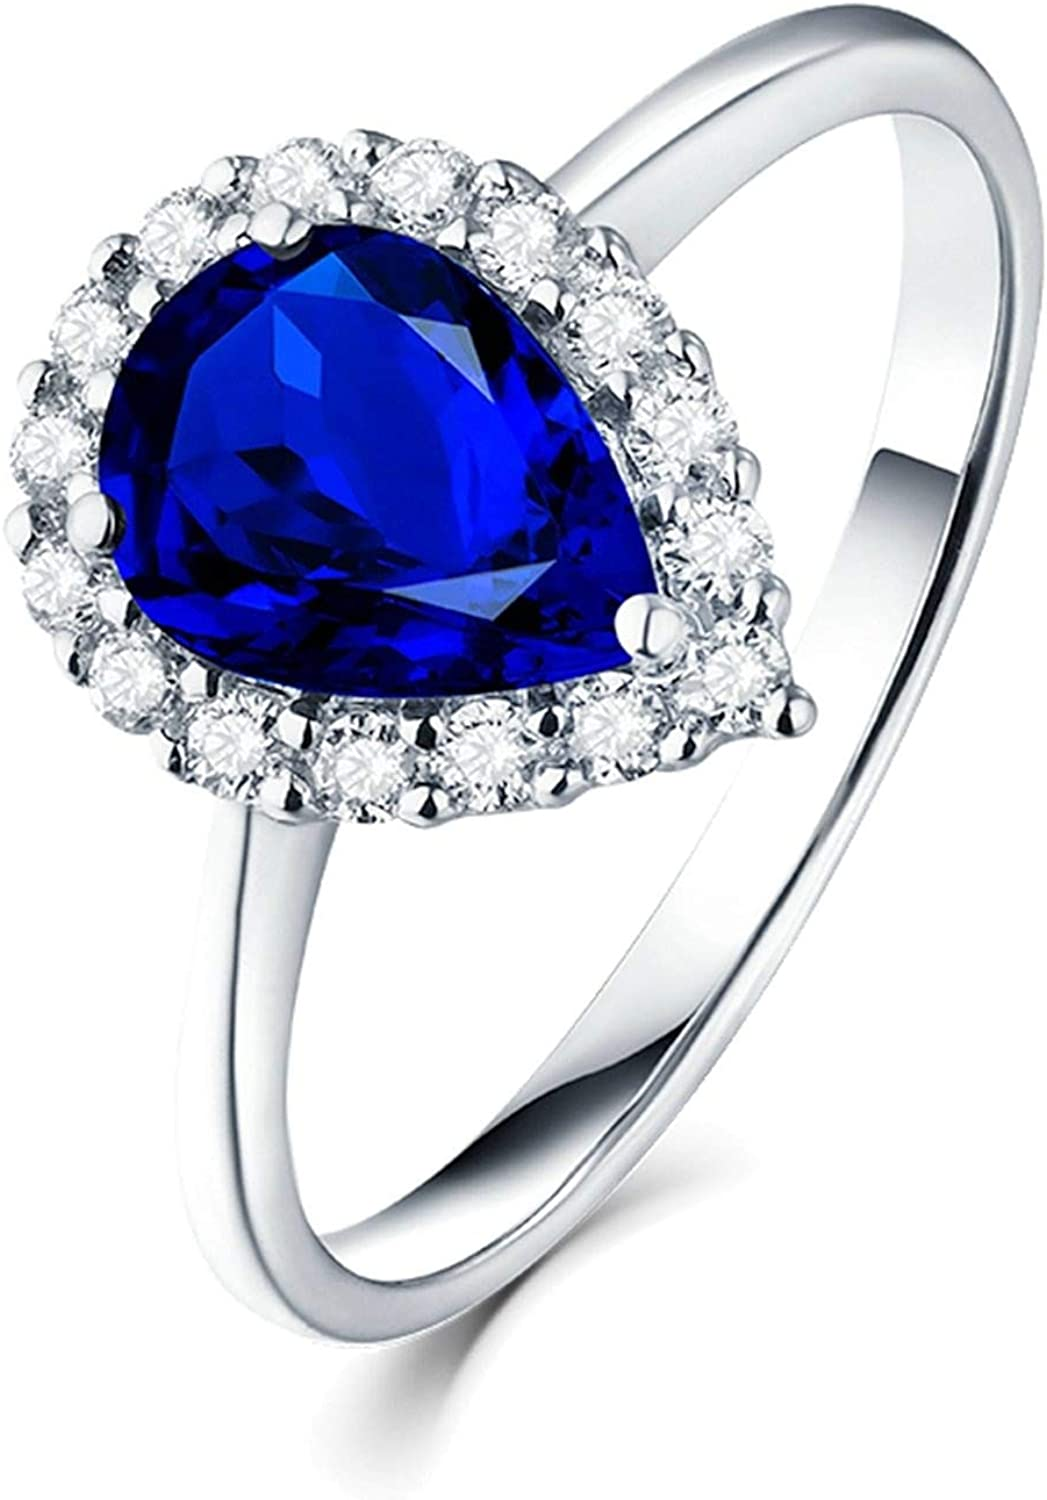 AMDXD Engagement Ring Unique 18K Women New popularity for Gold famous White Tear